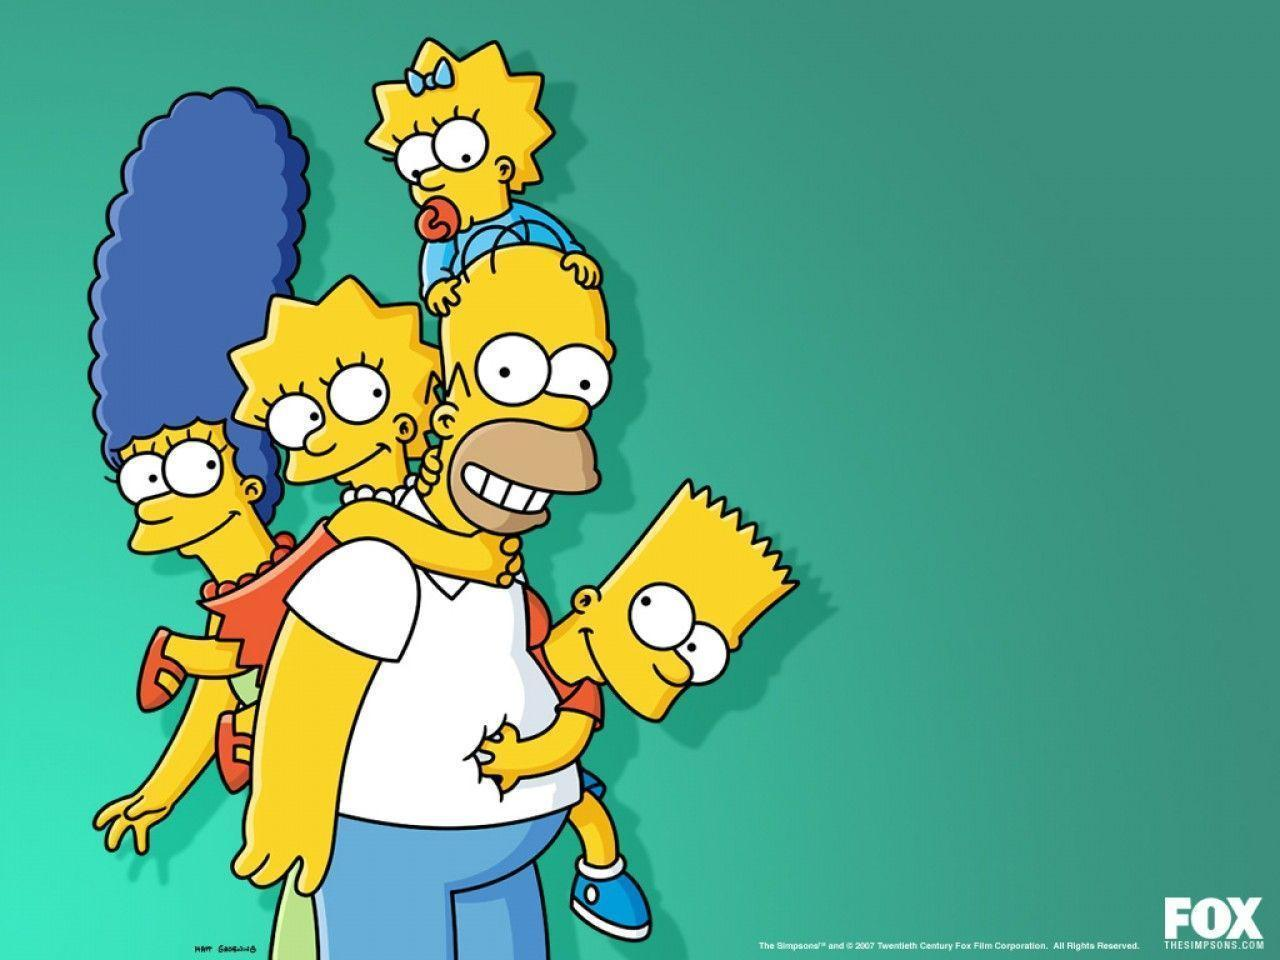 the simpsons Computer Wallpapers, Desktop Backgrounds 1280x960 Id ...